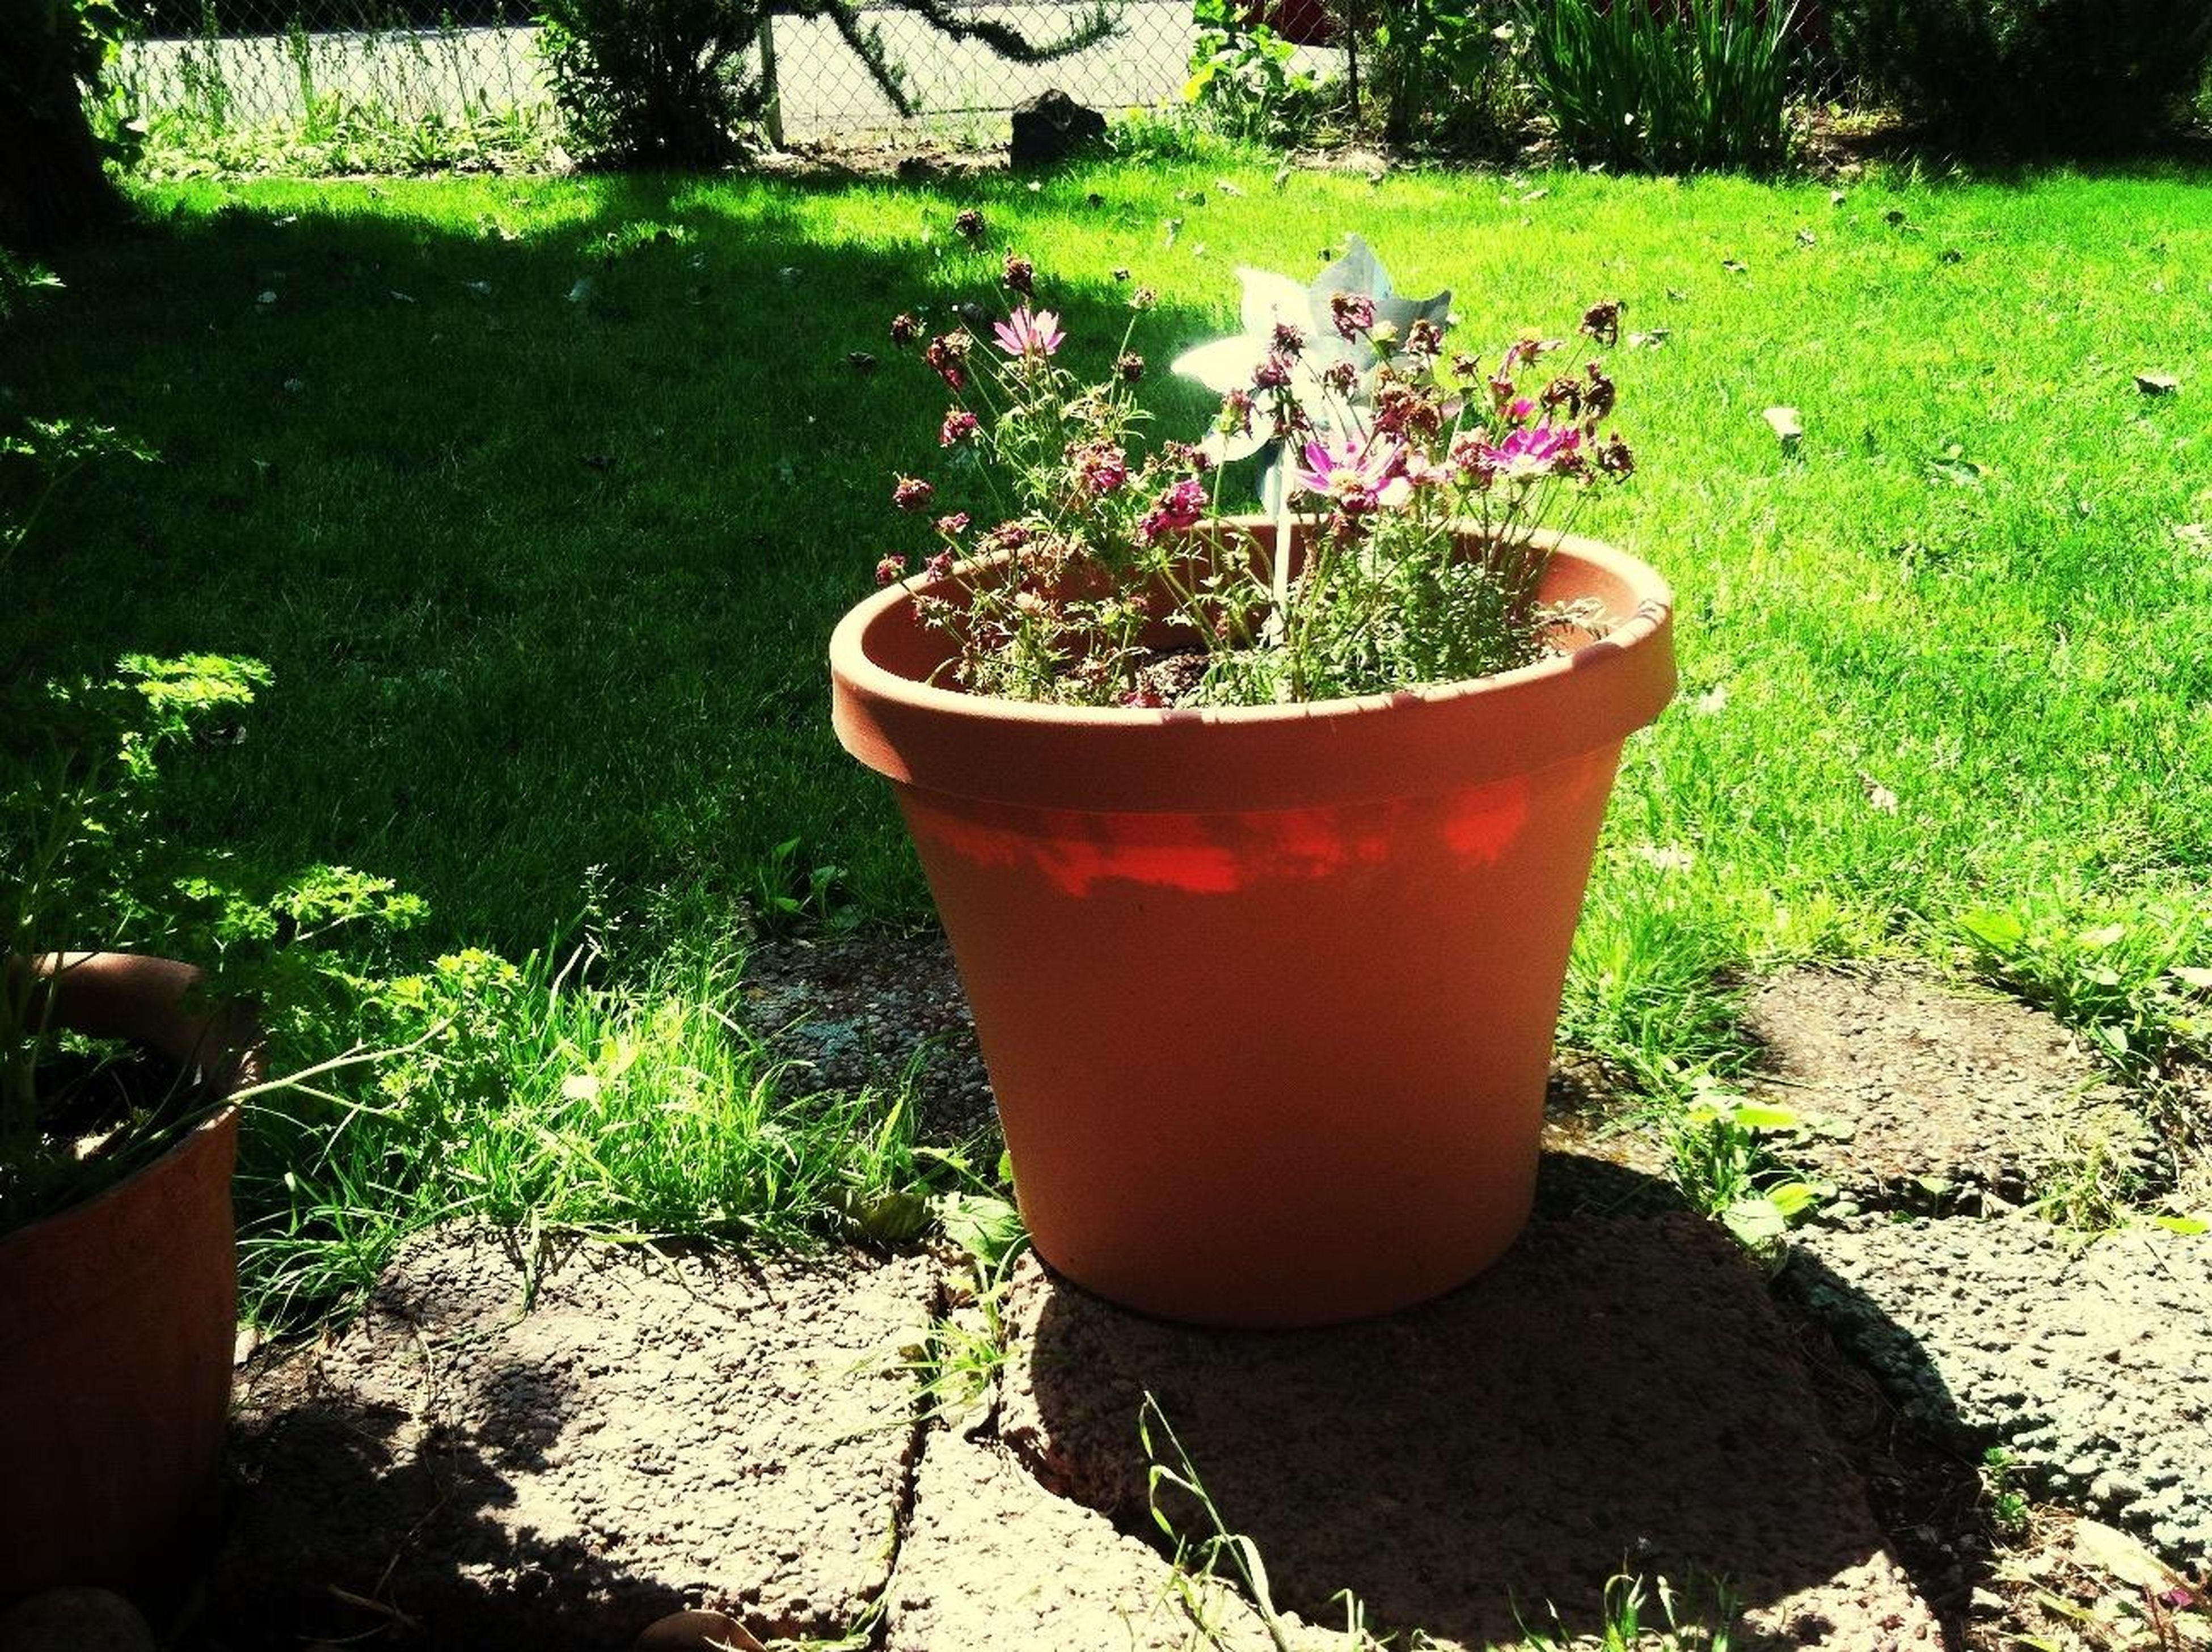 plant, potted plant, growth, front or back yard, freshness, green color, outdoors, table, close-up, flower pot, grass, sunlight, high angle view, day, no people, chair, red, still life, container, drink